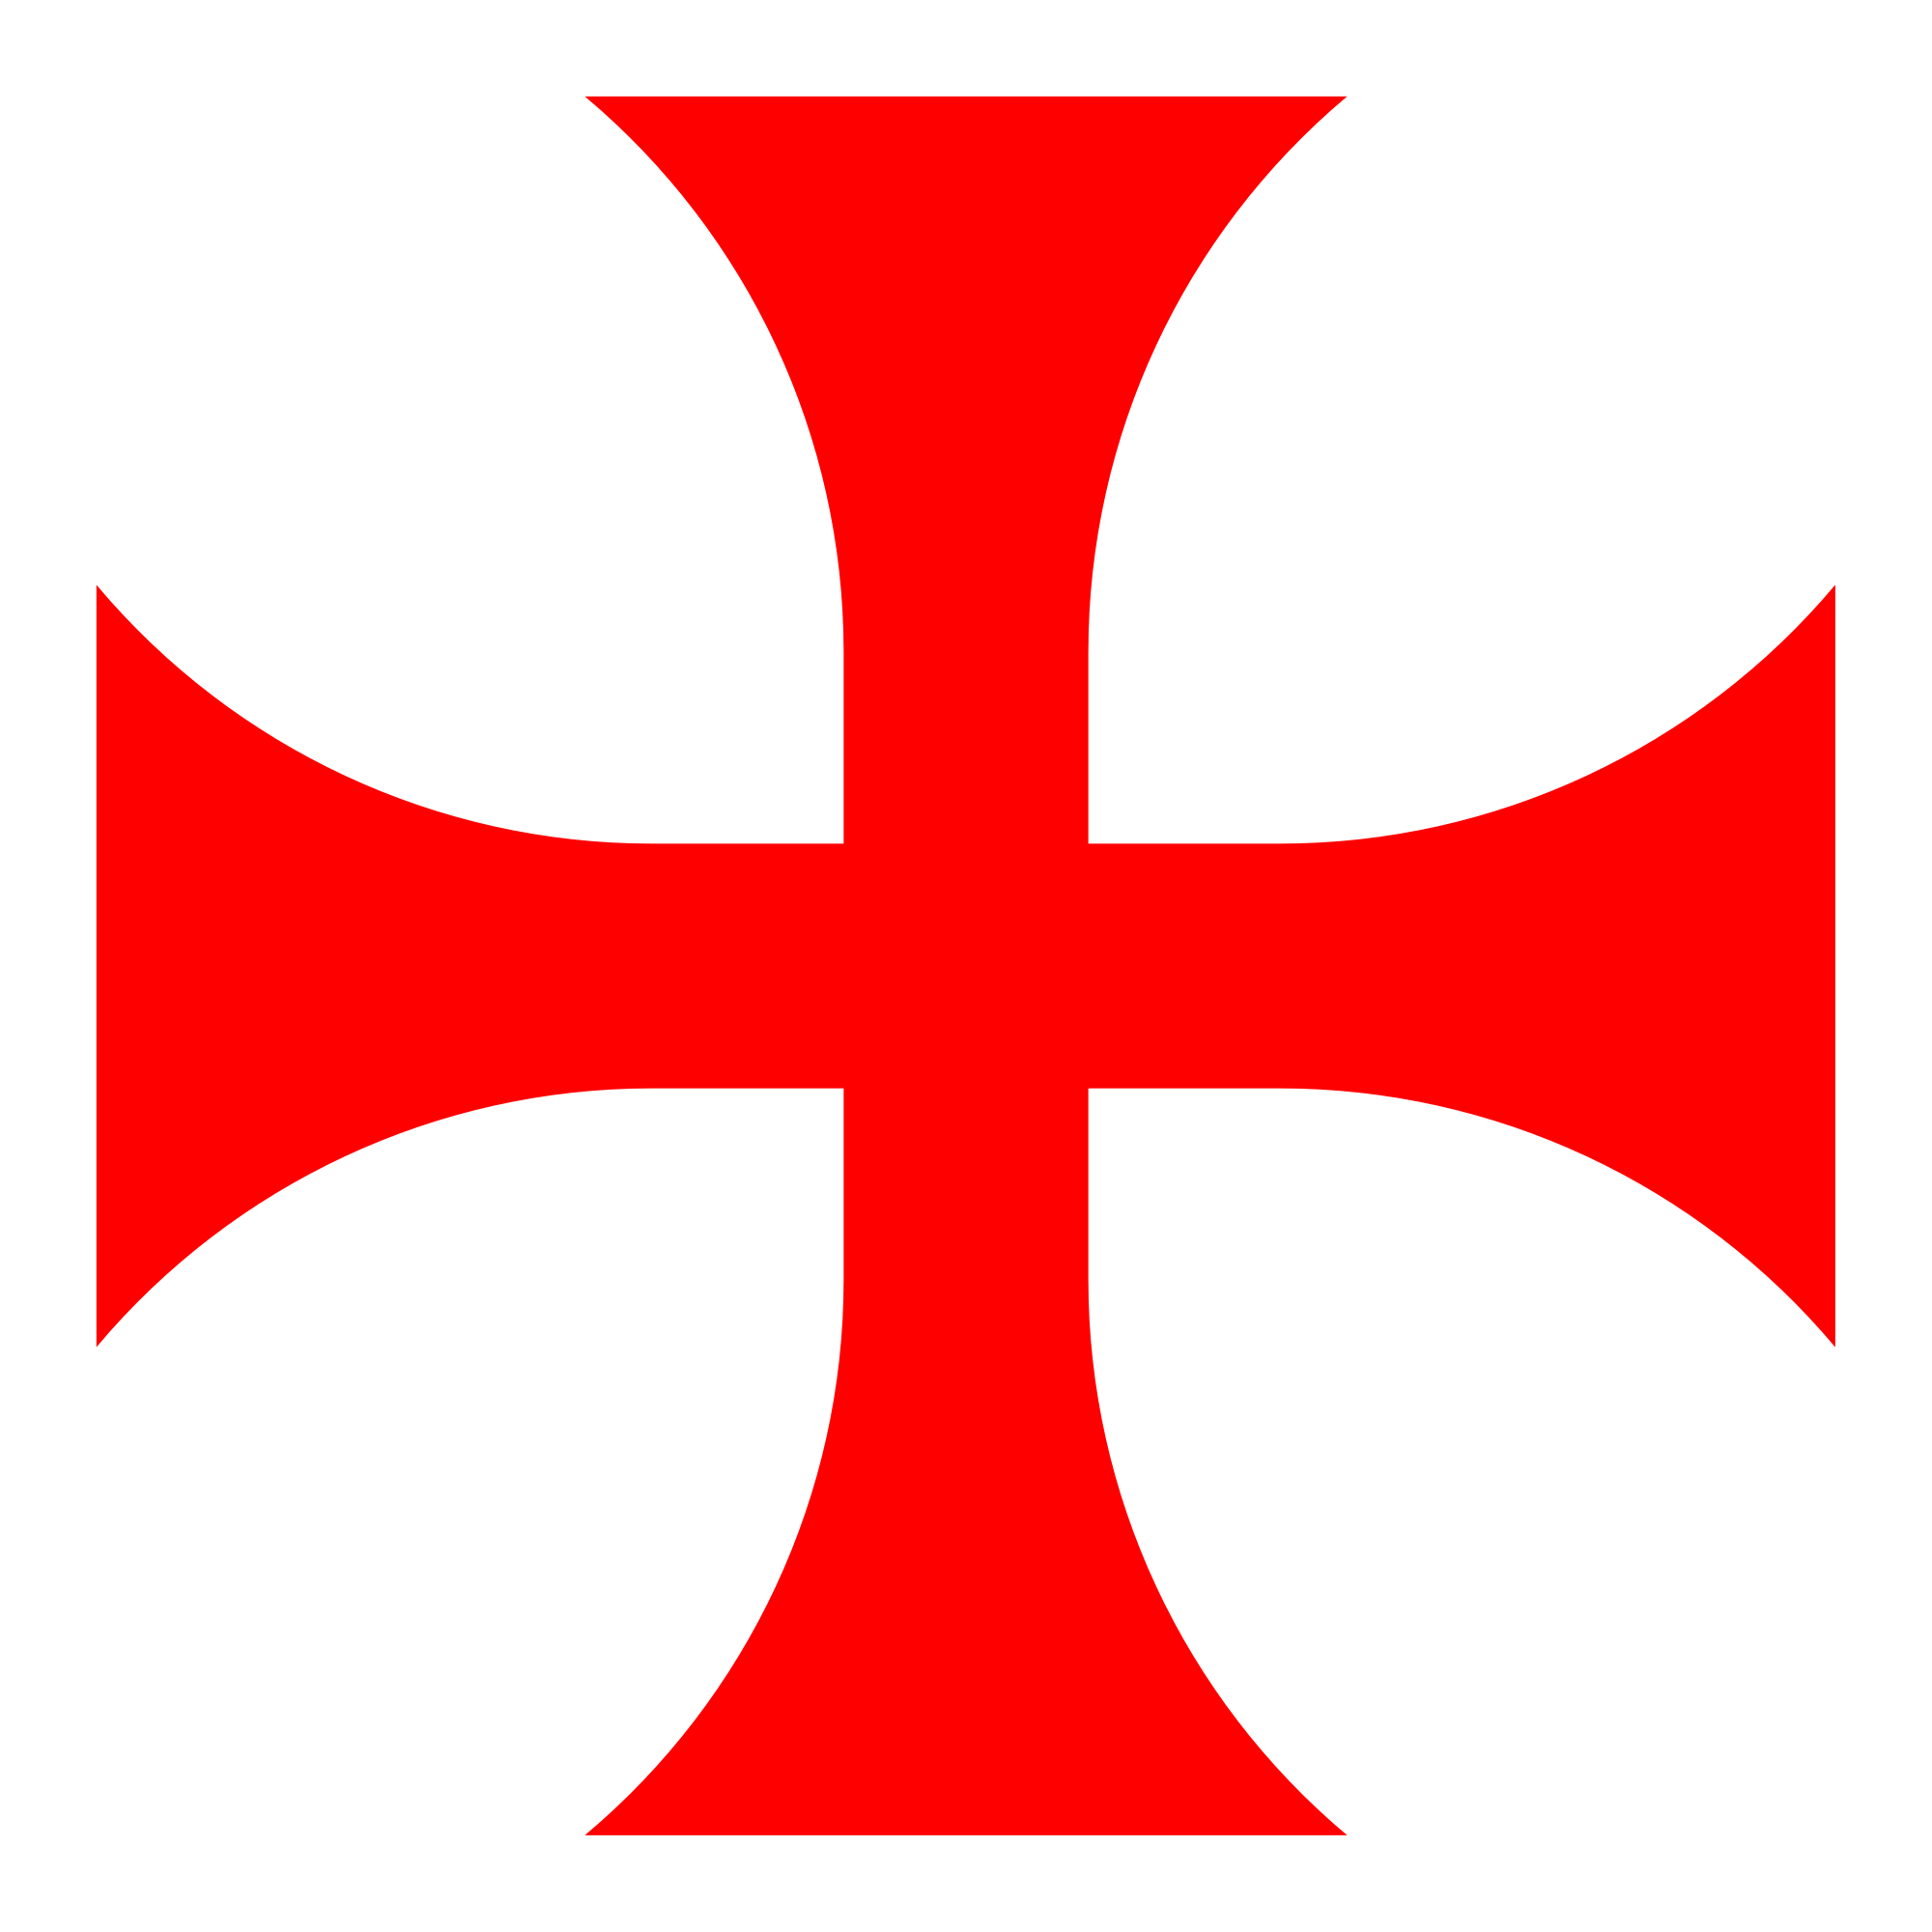 Red cross patte tattoo designs pinterest knights templar red cross patte biocorpaavc Images